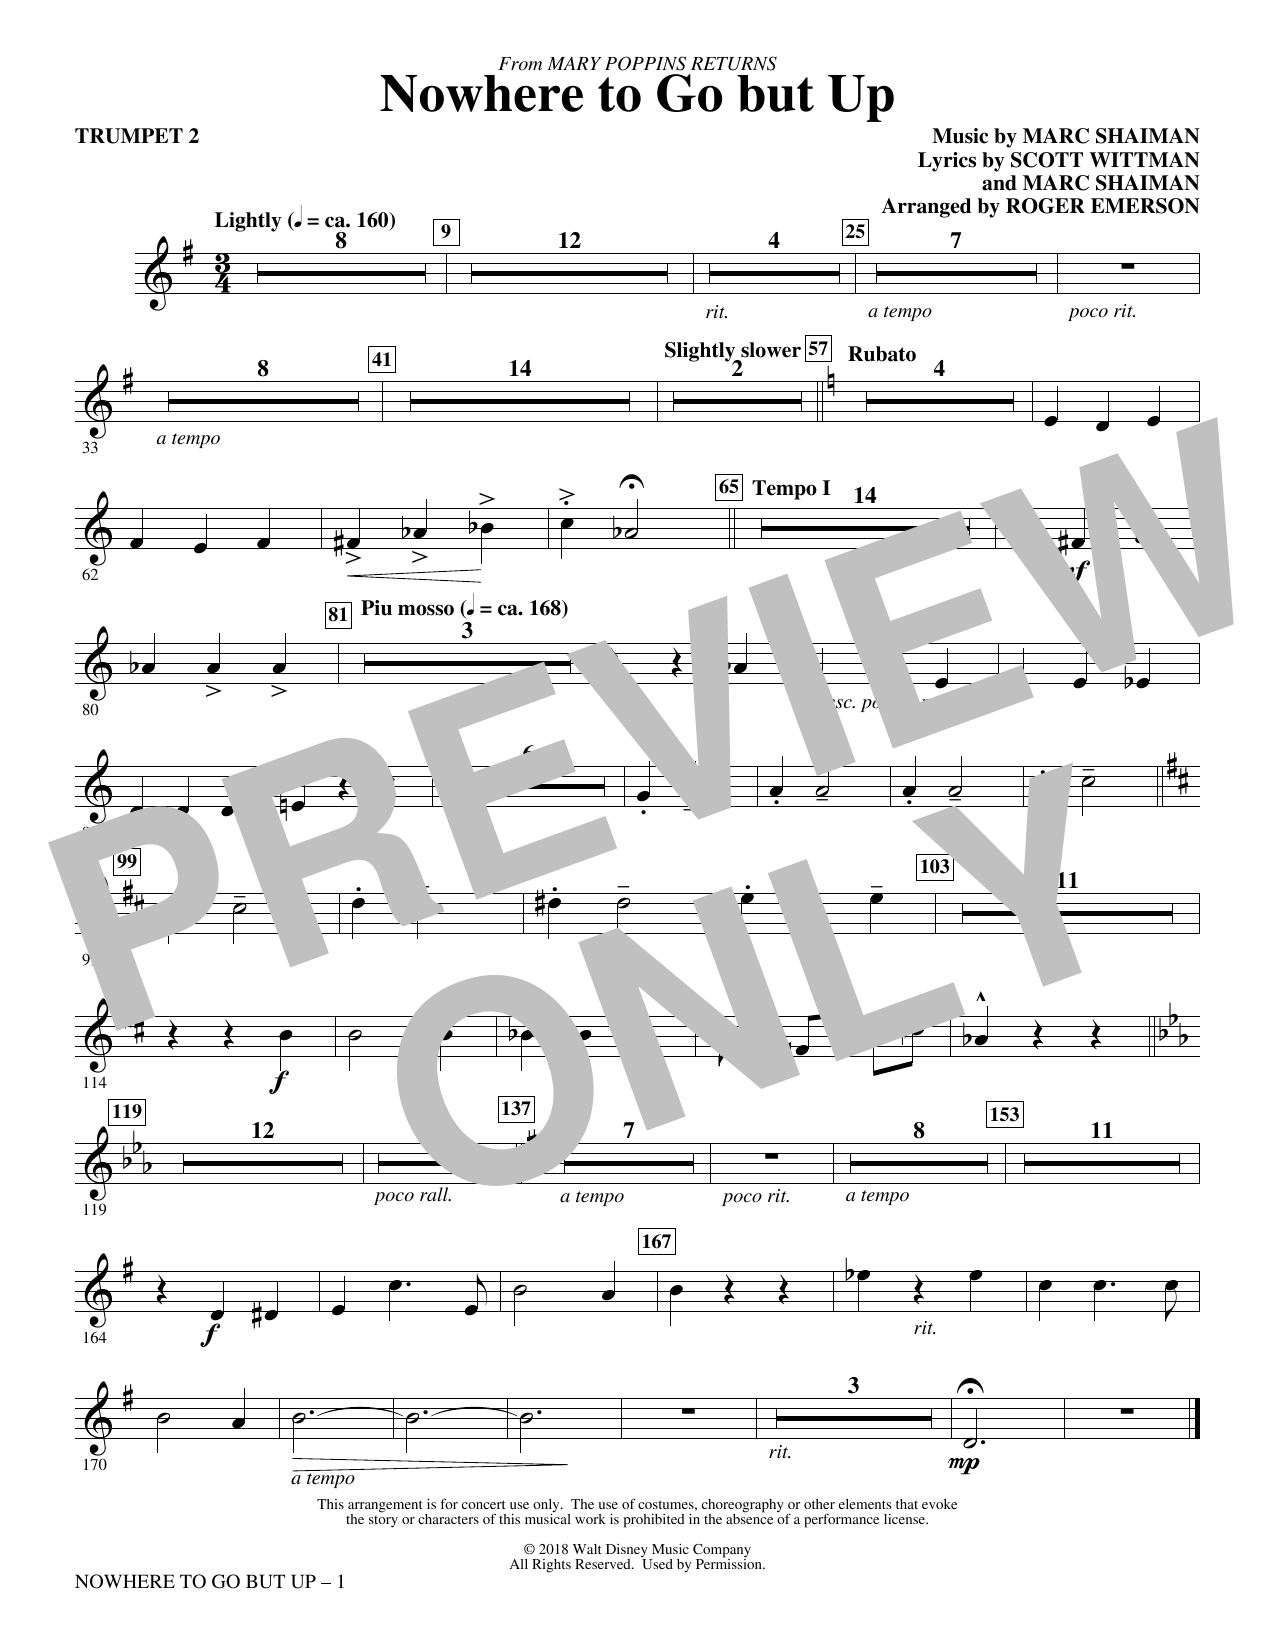 Marc Shaiman & Scott Wittman Nowhere to Go But Up (from Mary Poppins Returns) (arr. Roger Emerson) - Trumpet 2 sheet music preview music notes and score for Choir Instrumental Pak including 1 page(s)